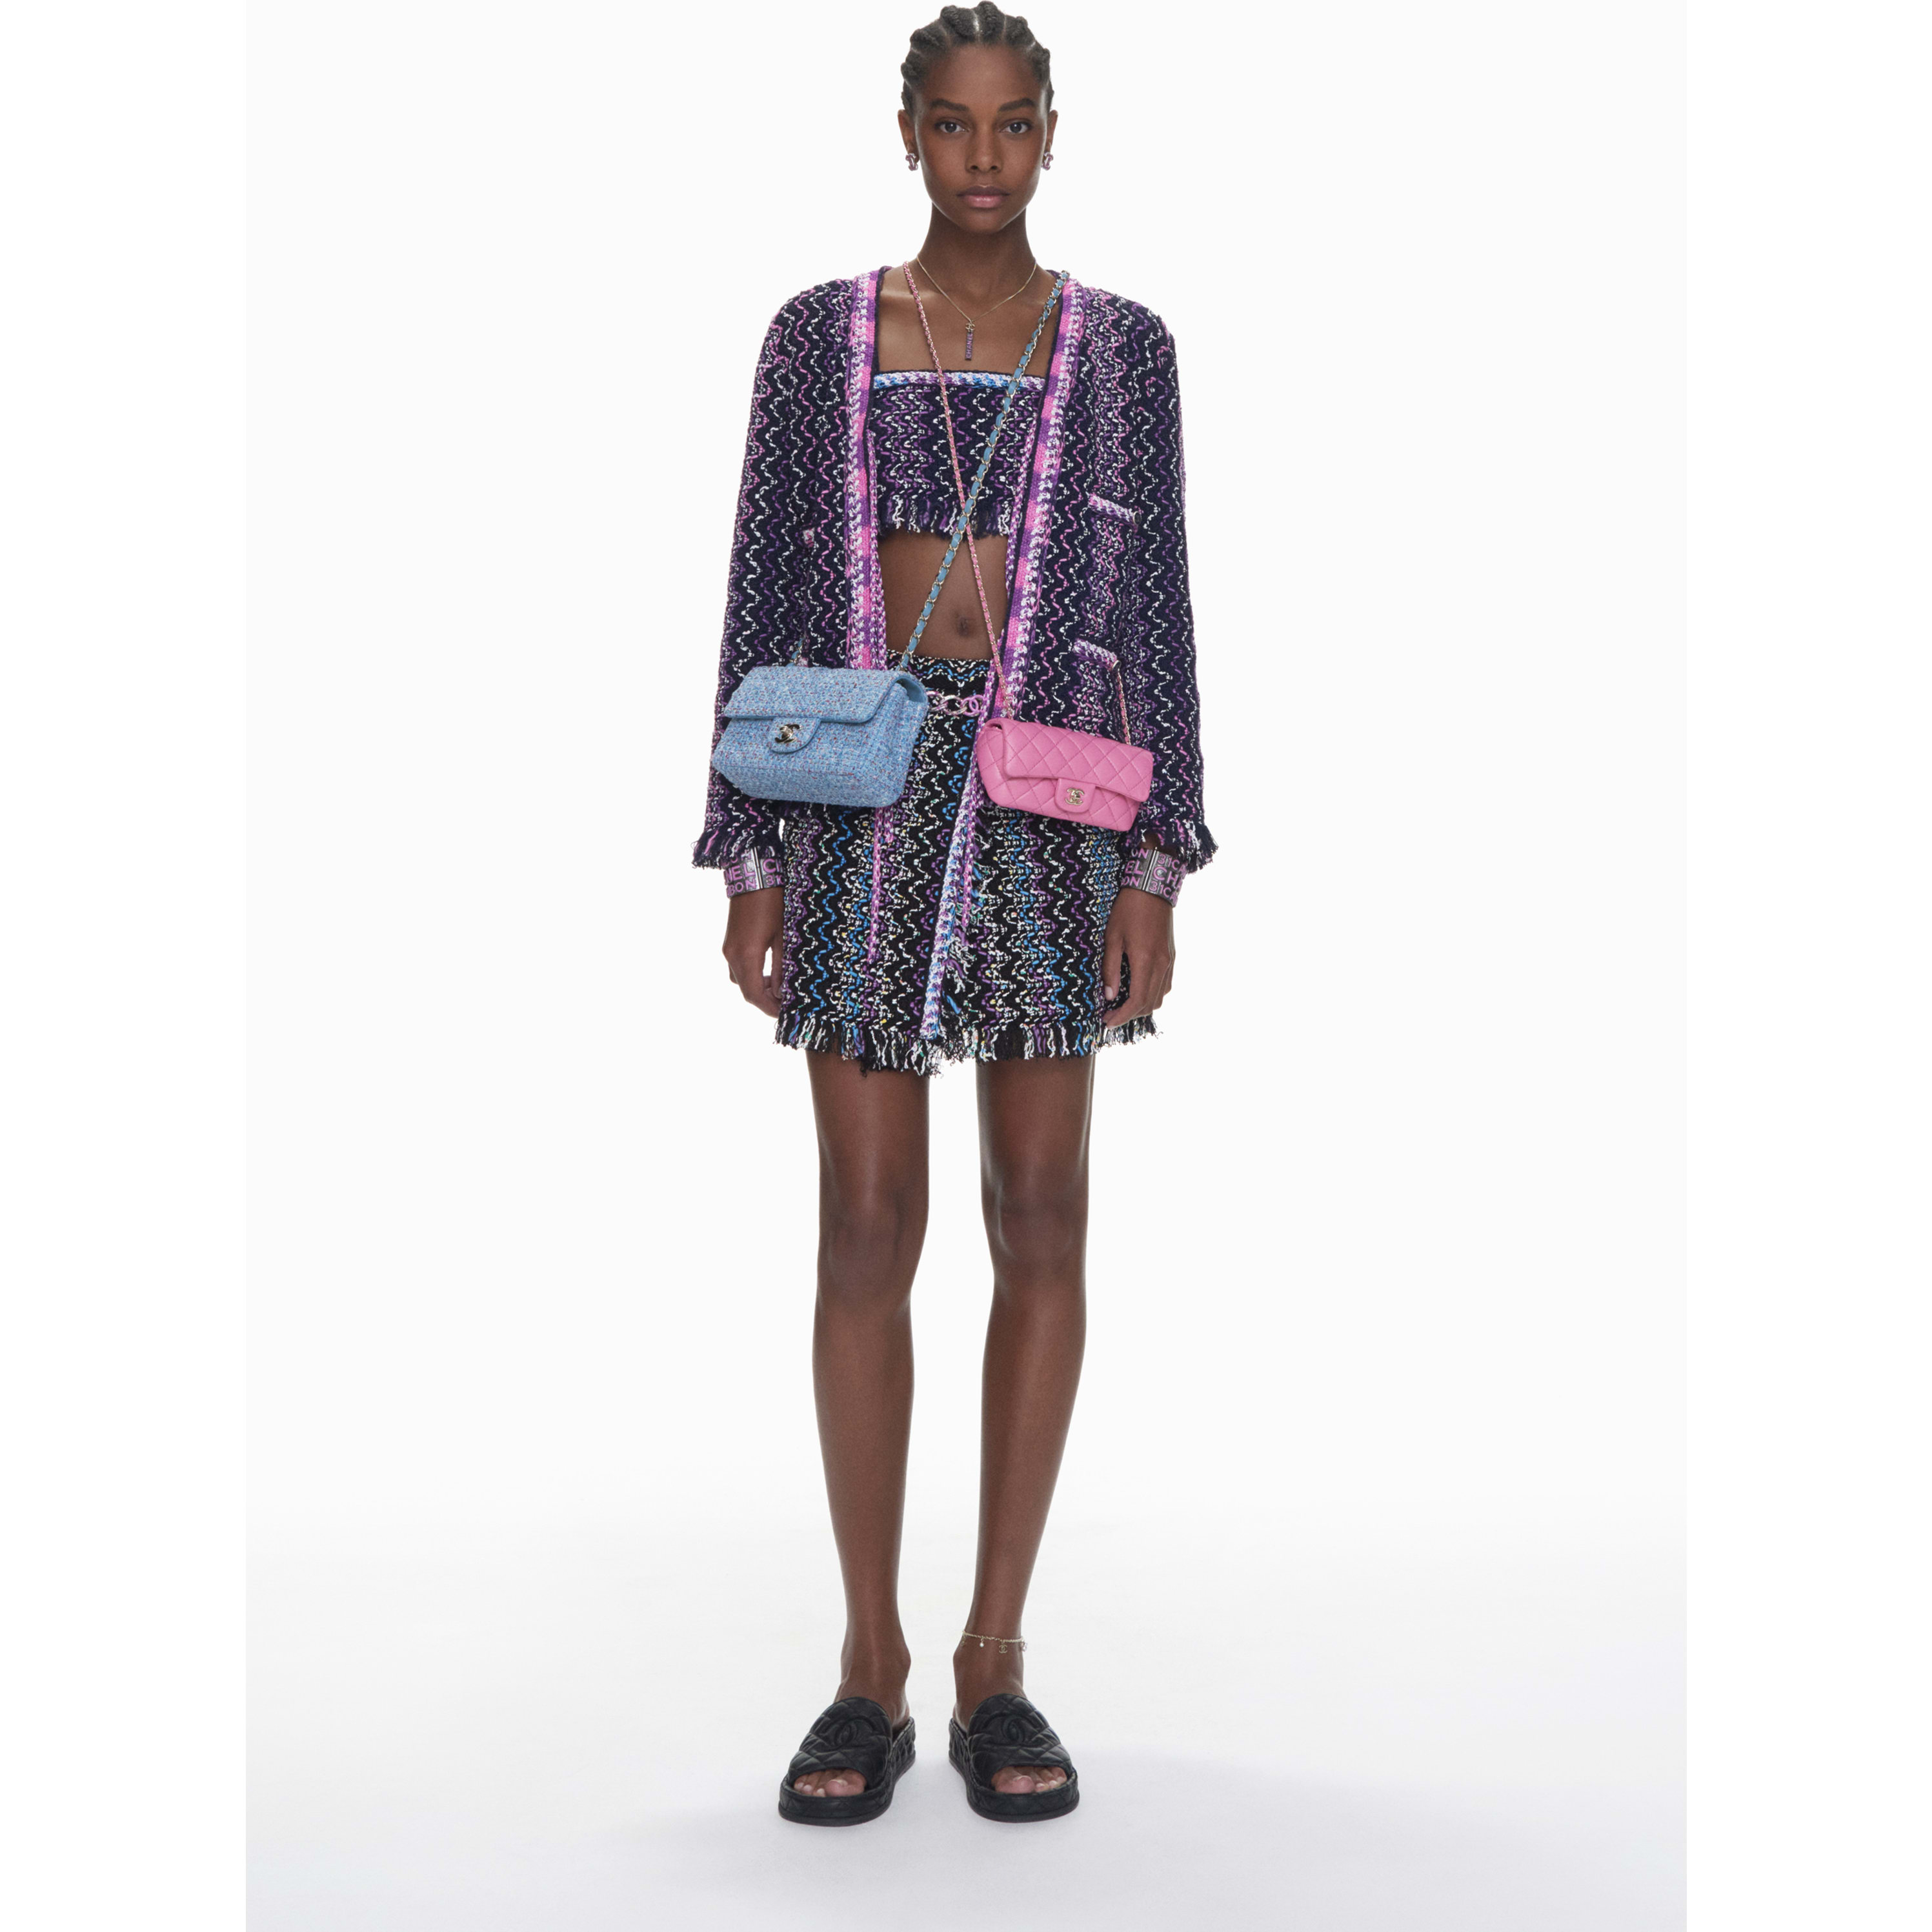 Cardigan - Navy Blue, Purple & Pink - Cotton & Mixed Fibers - CHANEL - Default view - see standard sized version